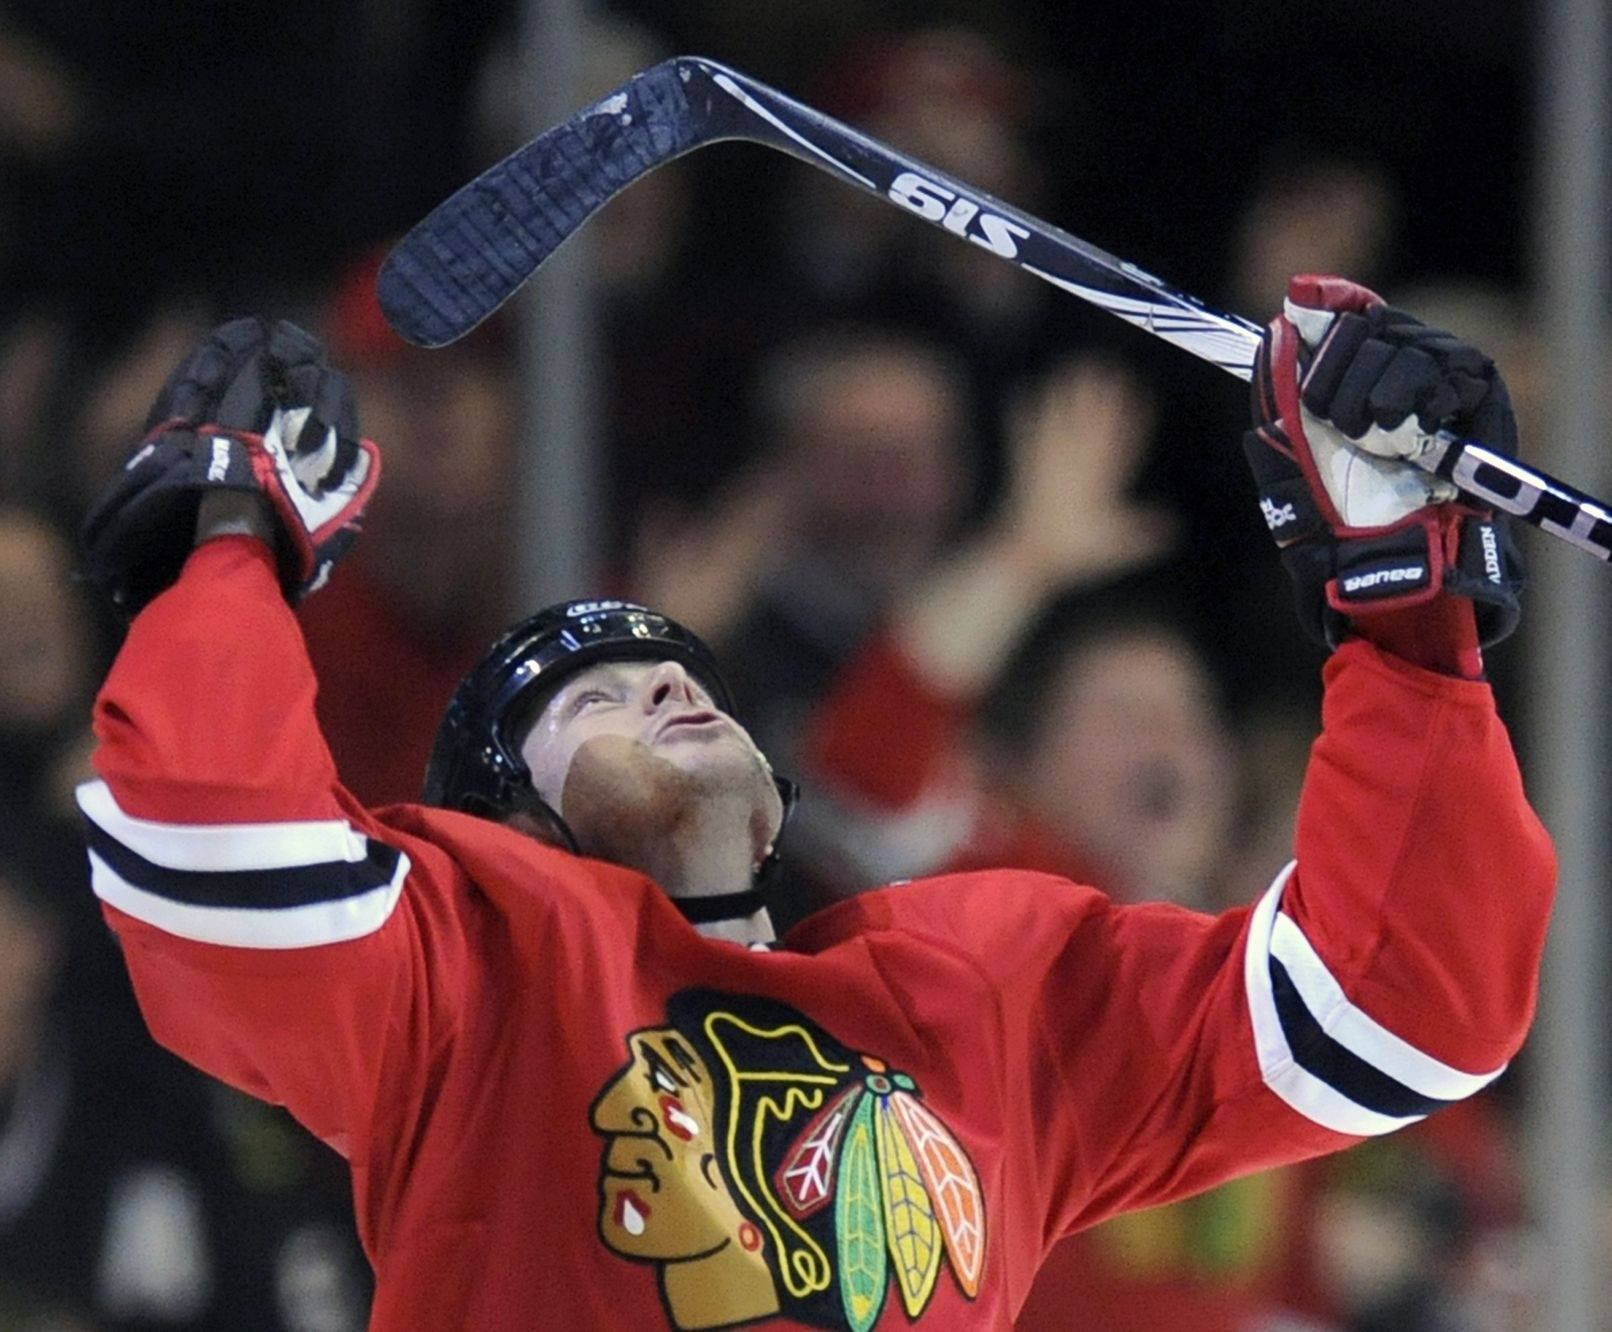 Chicago Blackhawks' John Madden celebrates after scoring against the New Jersey Devils in the third period during an NHL Hockey game in Chicago, Thursday, Dec. 31.